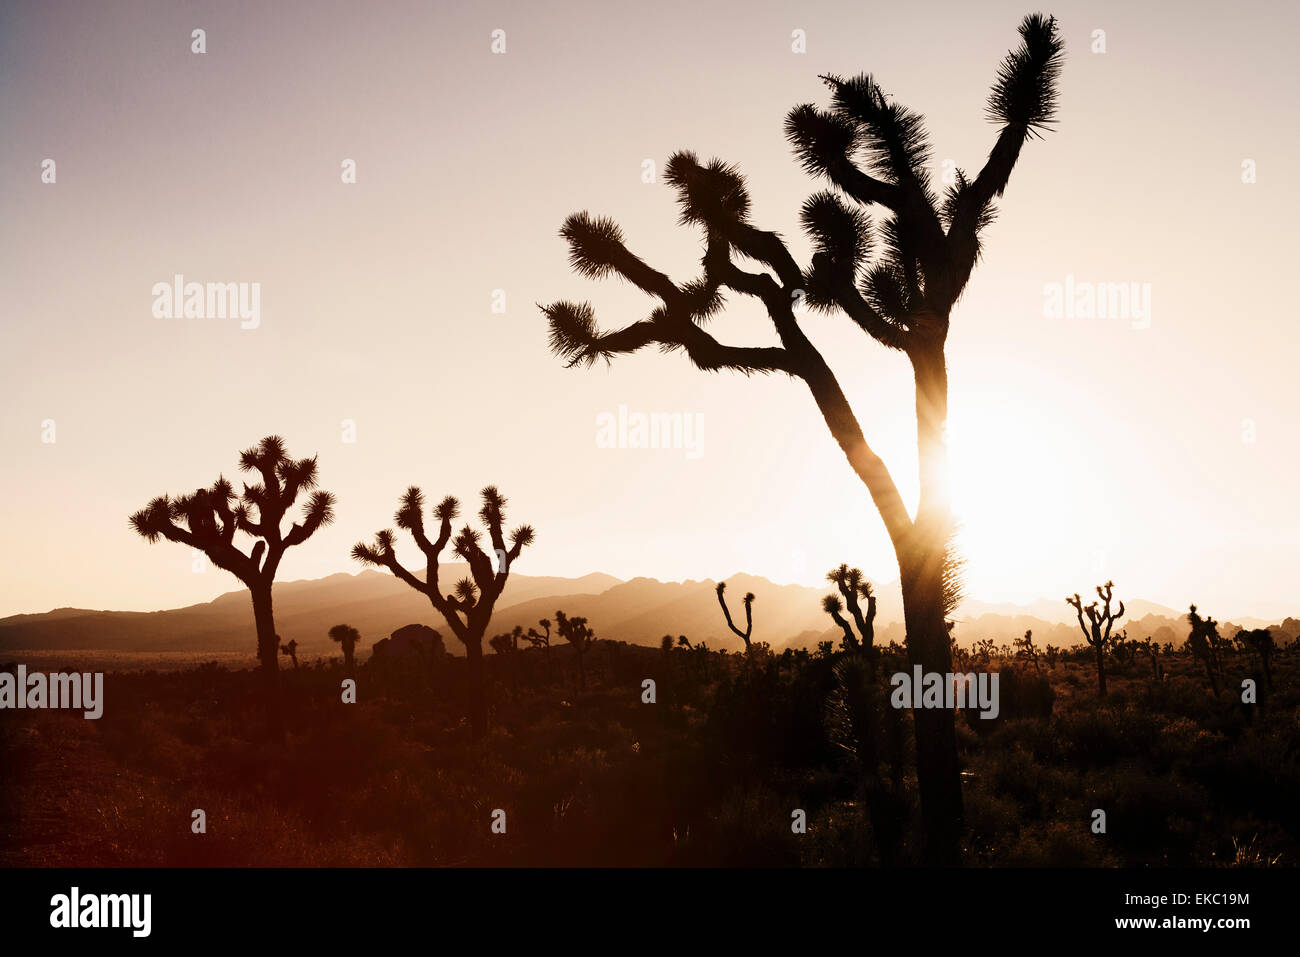 Silhouetted joshua trees, Joshua Tree National Park, California, USA - Stock Image